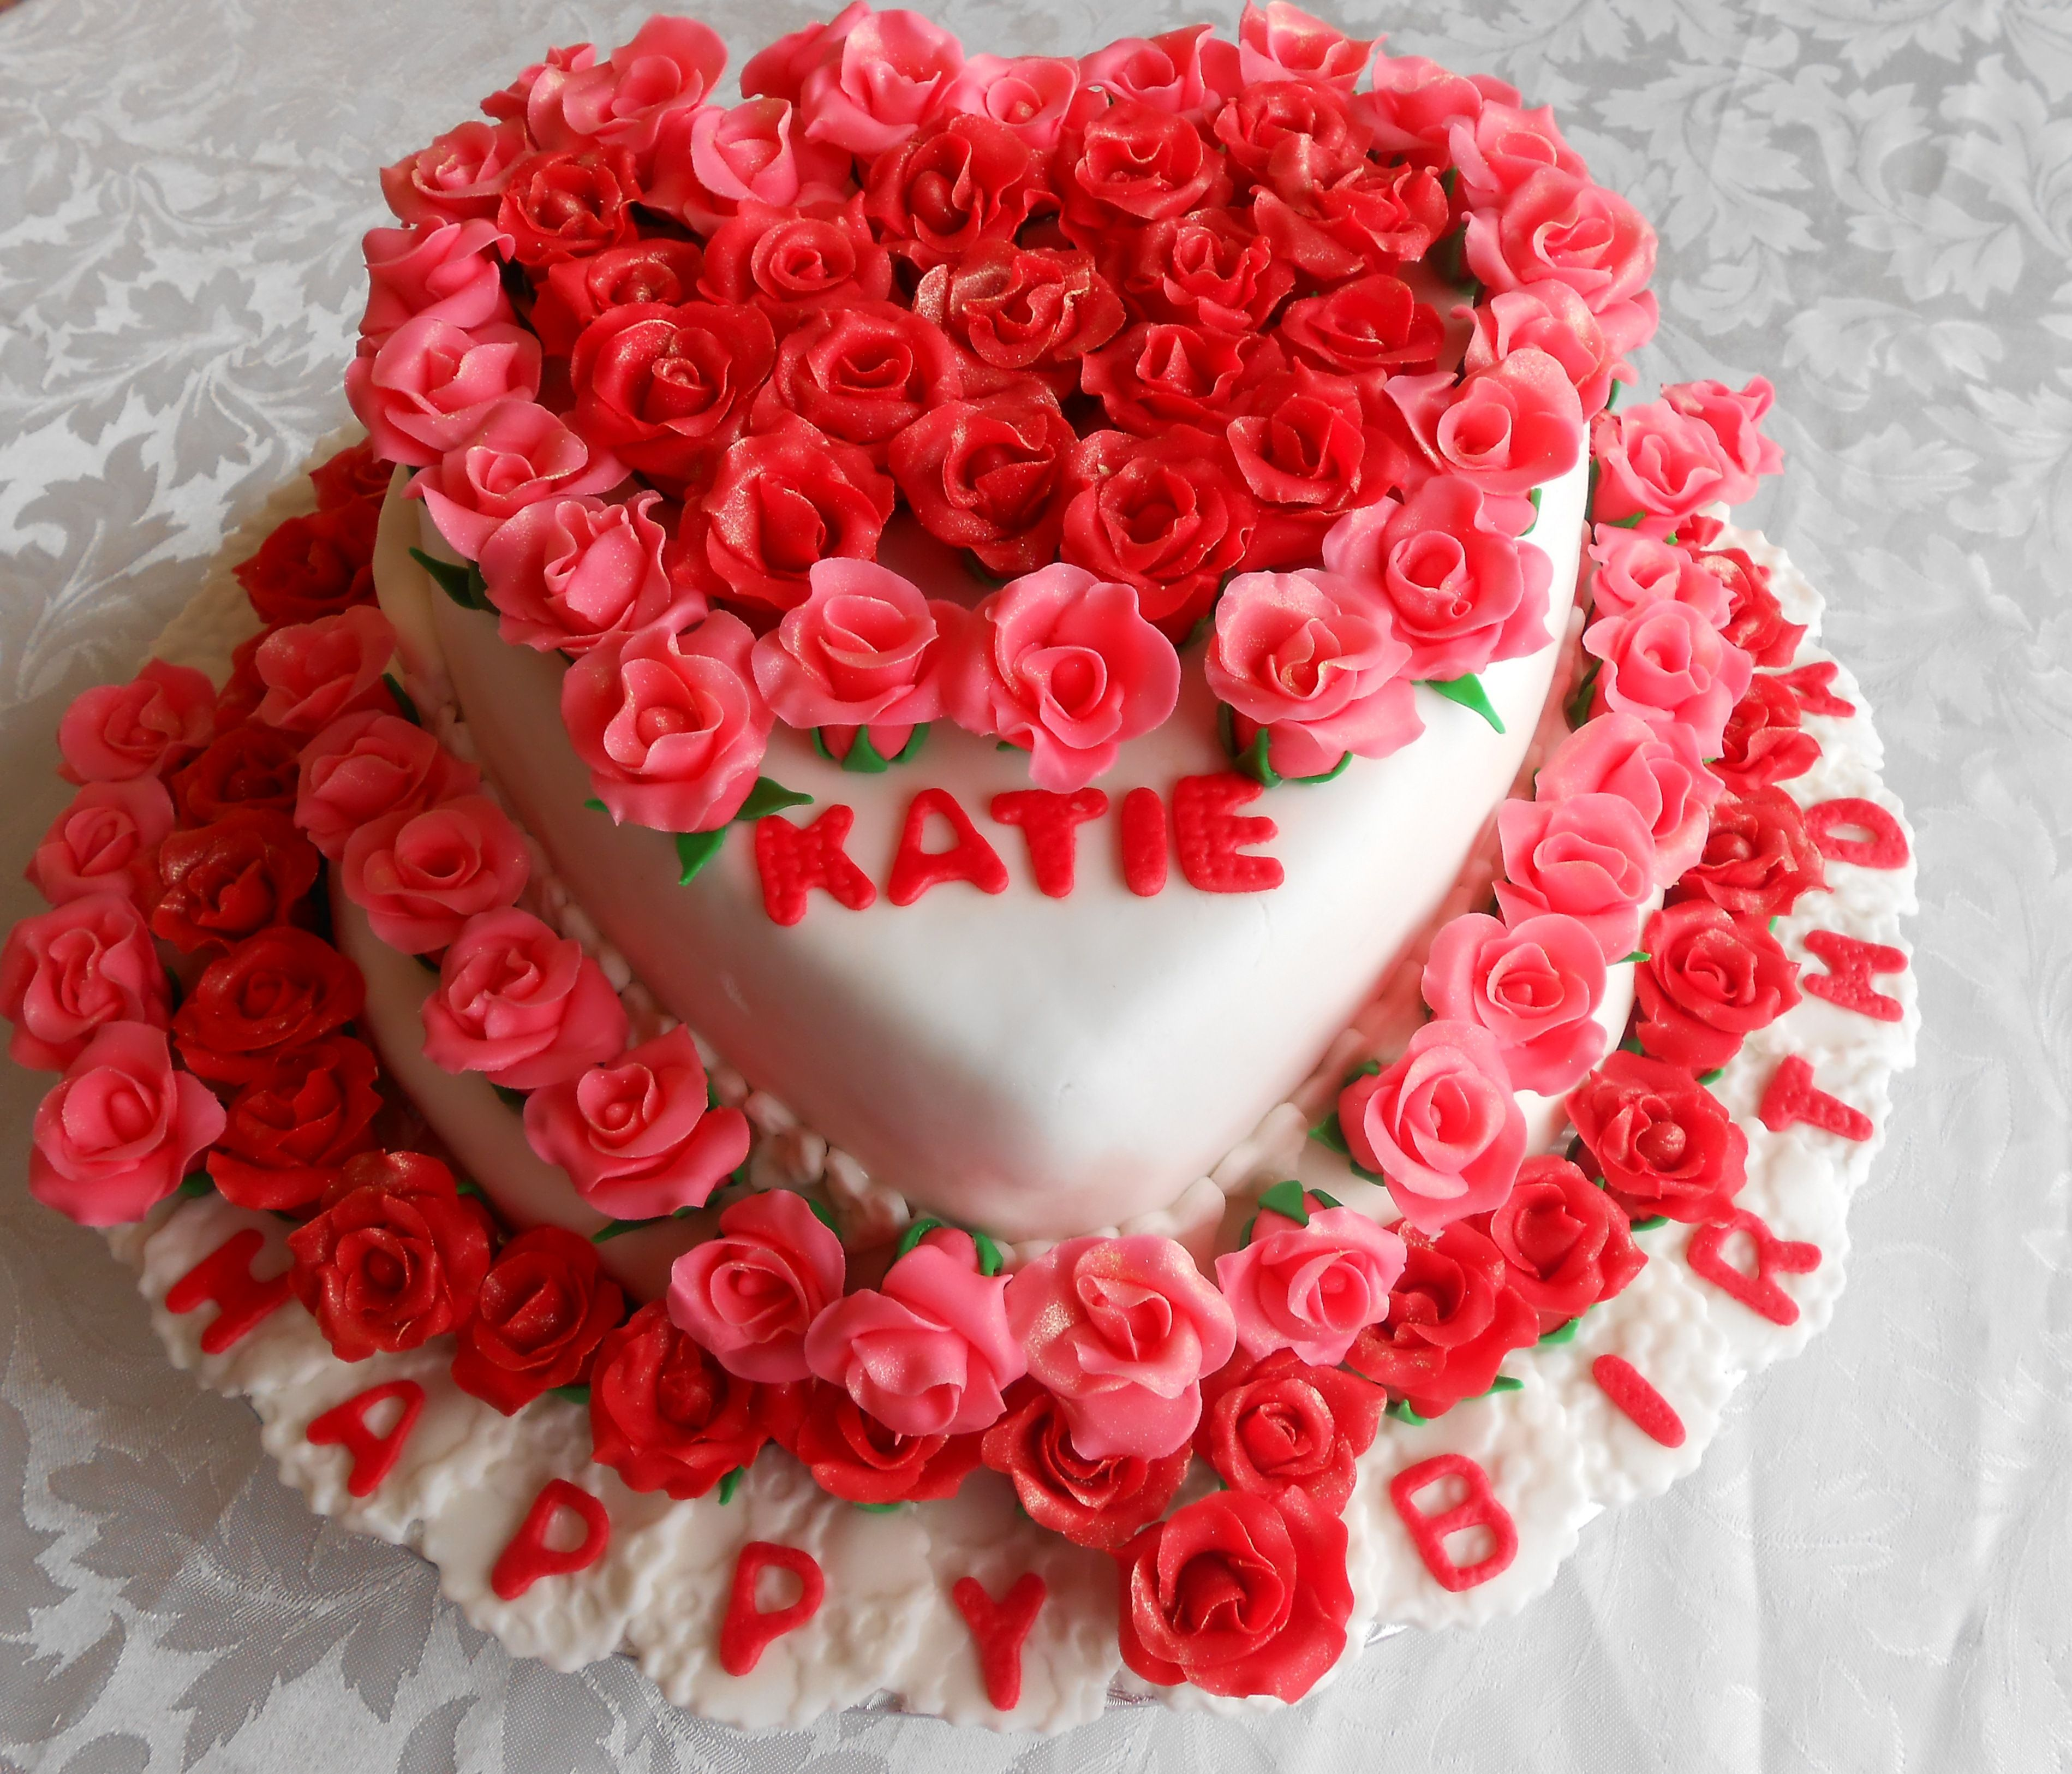 99 Roses Chocolate Cake Roses Heart Shaped Cake